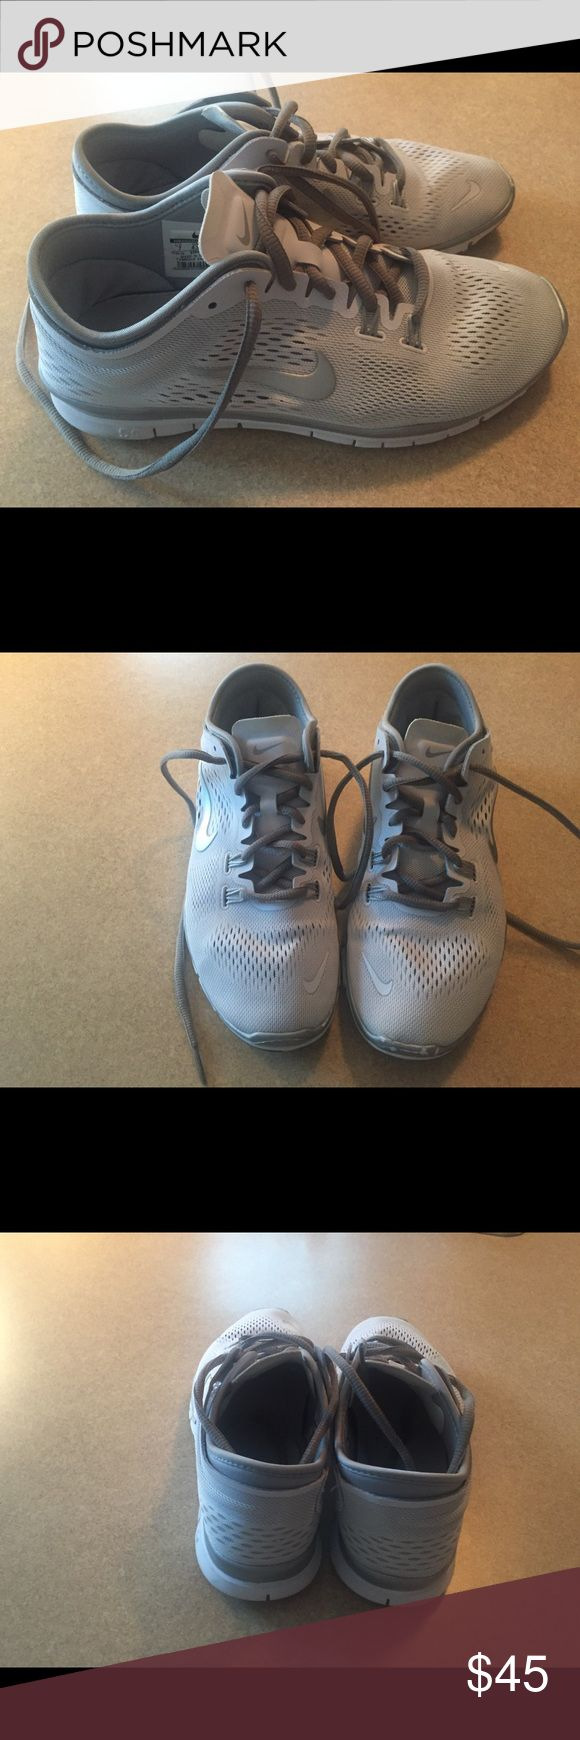 Women's Nike Shoes size 7 Women's Nike shoes-used-worn a few times. They are white and grey size 7. Nike Shoes Athletic Shoes